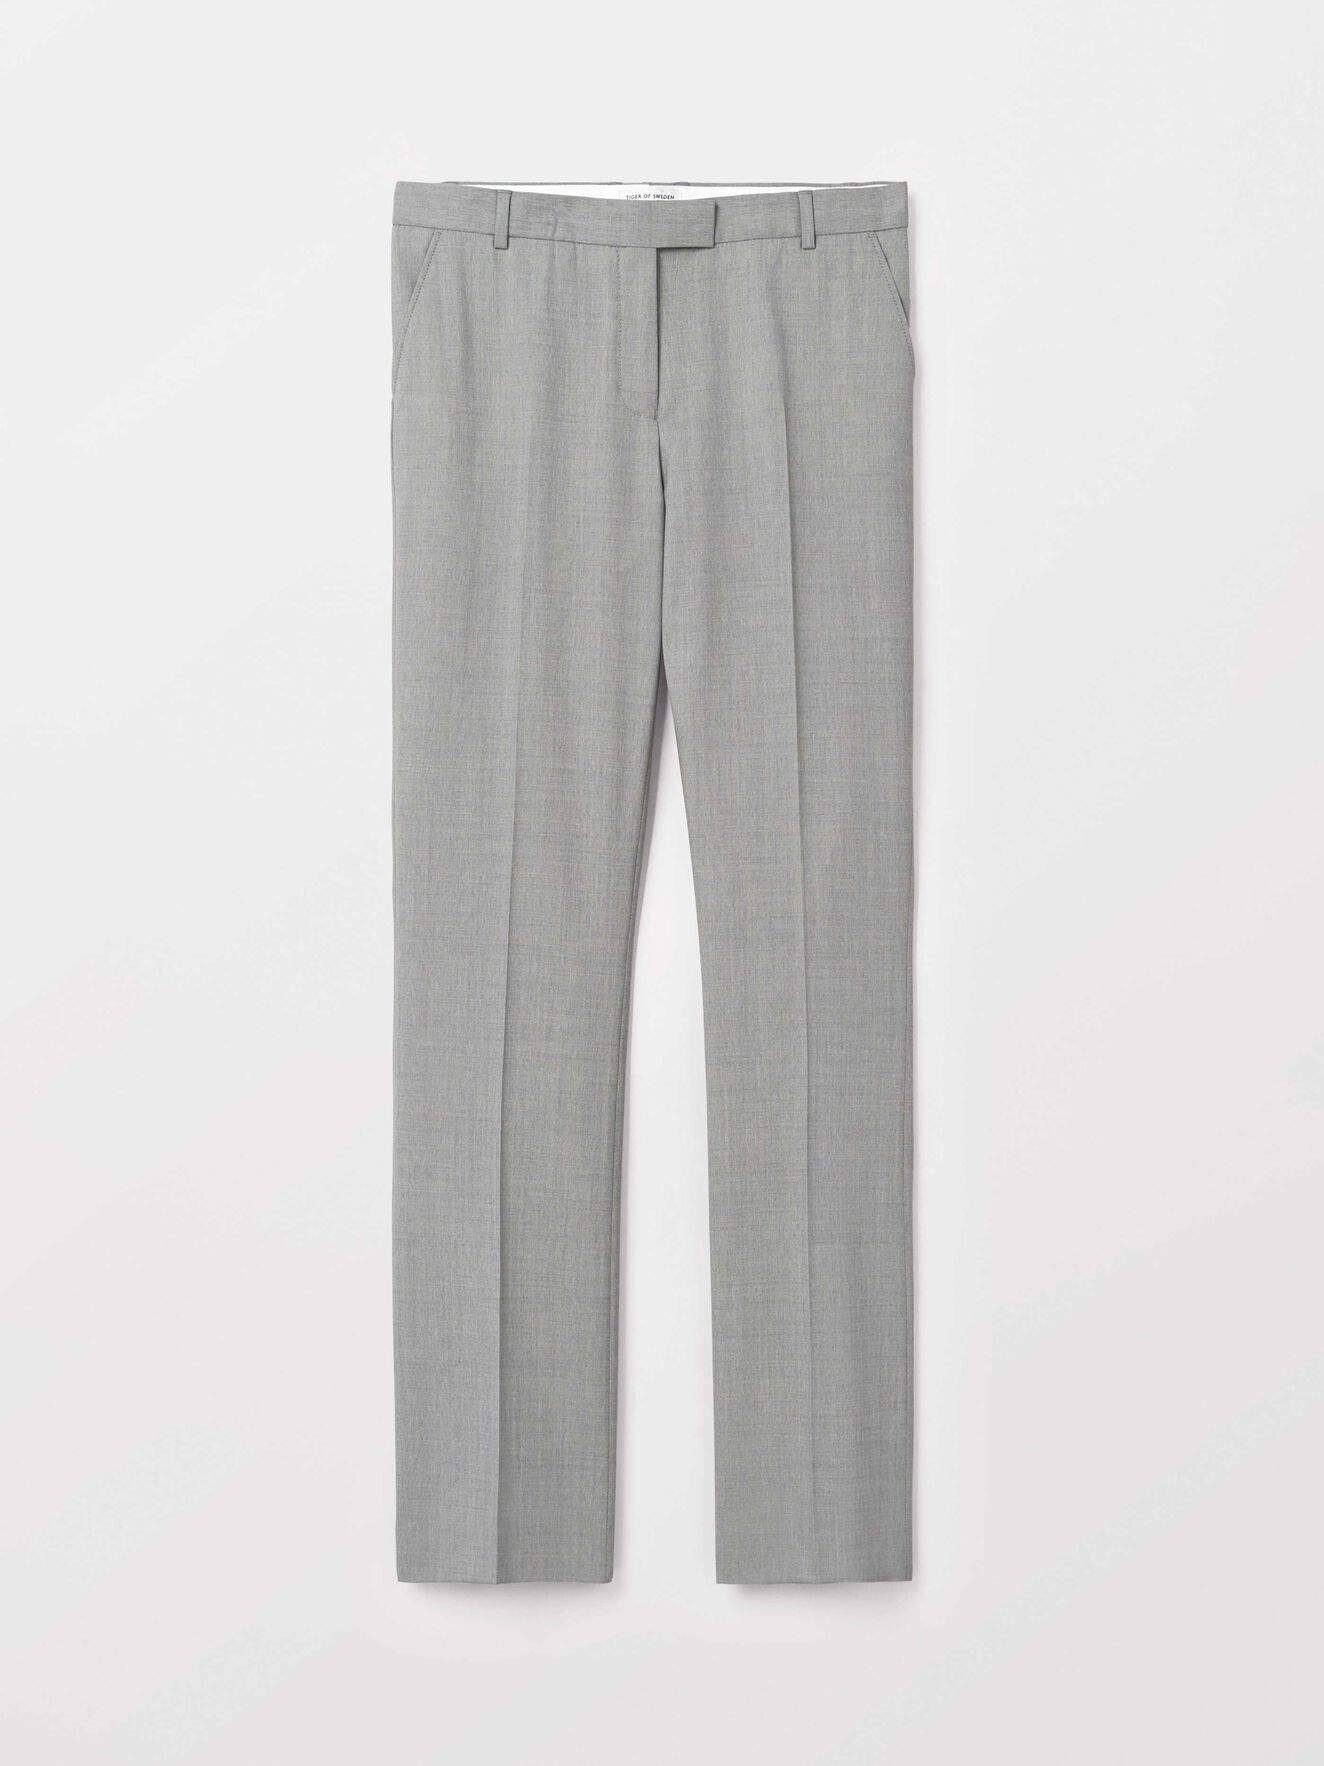 Hollen Trousers in Light grey melange from Tiger of Sweden